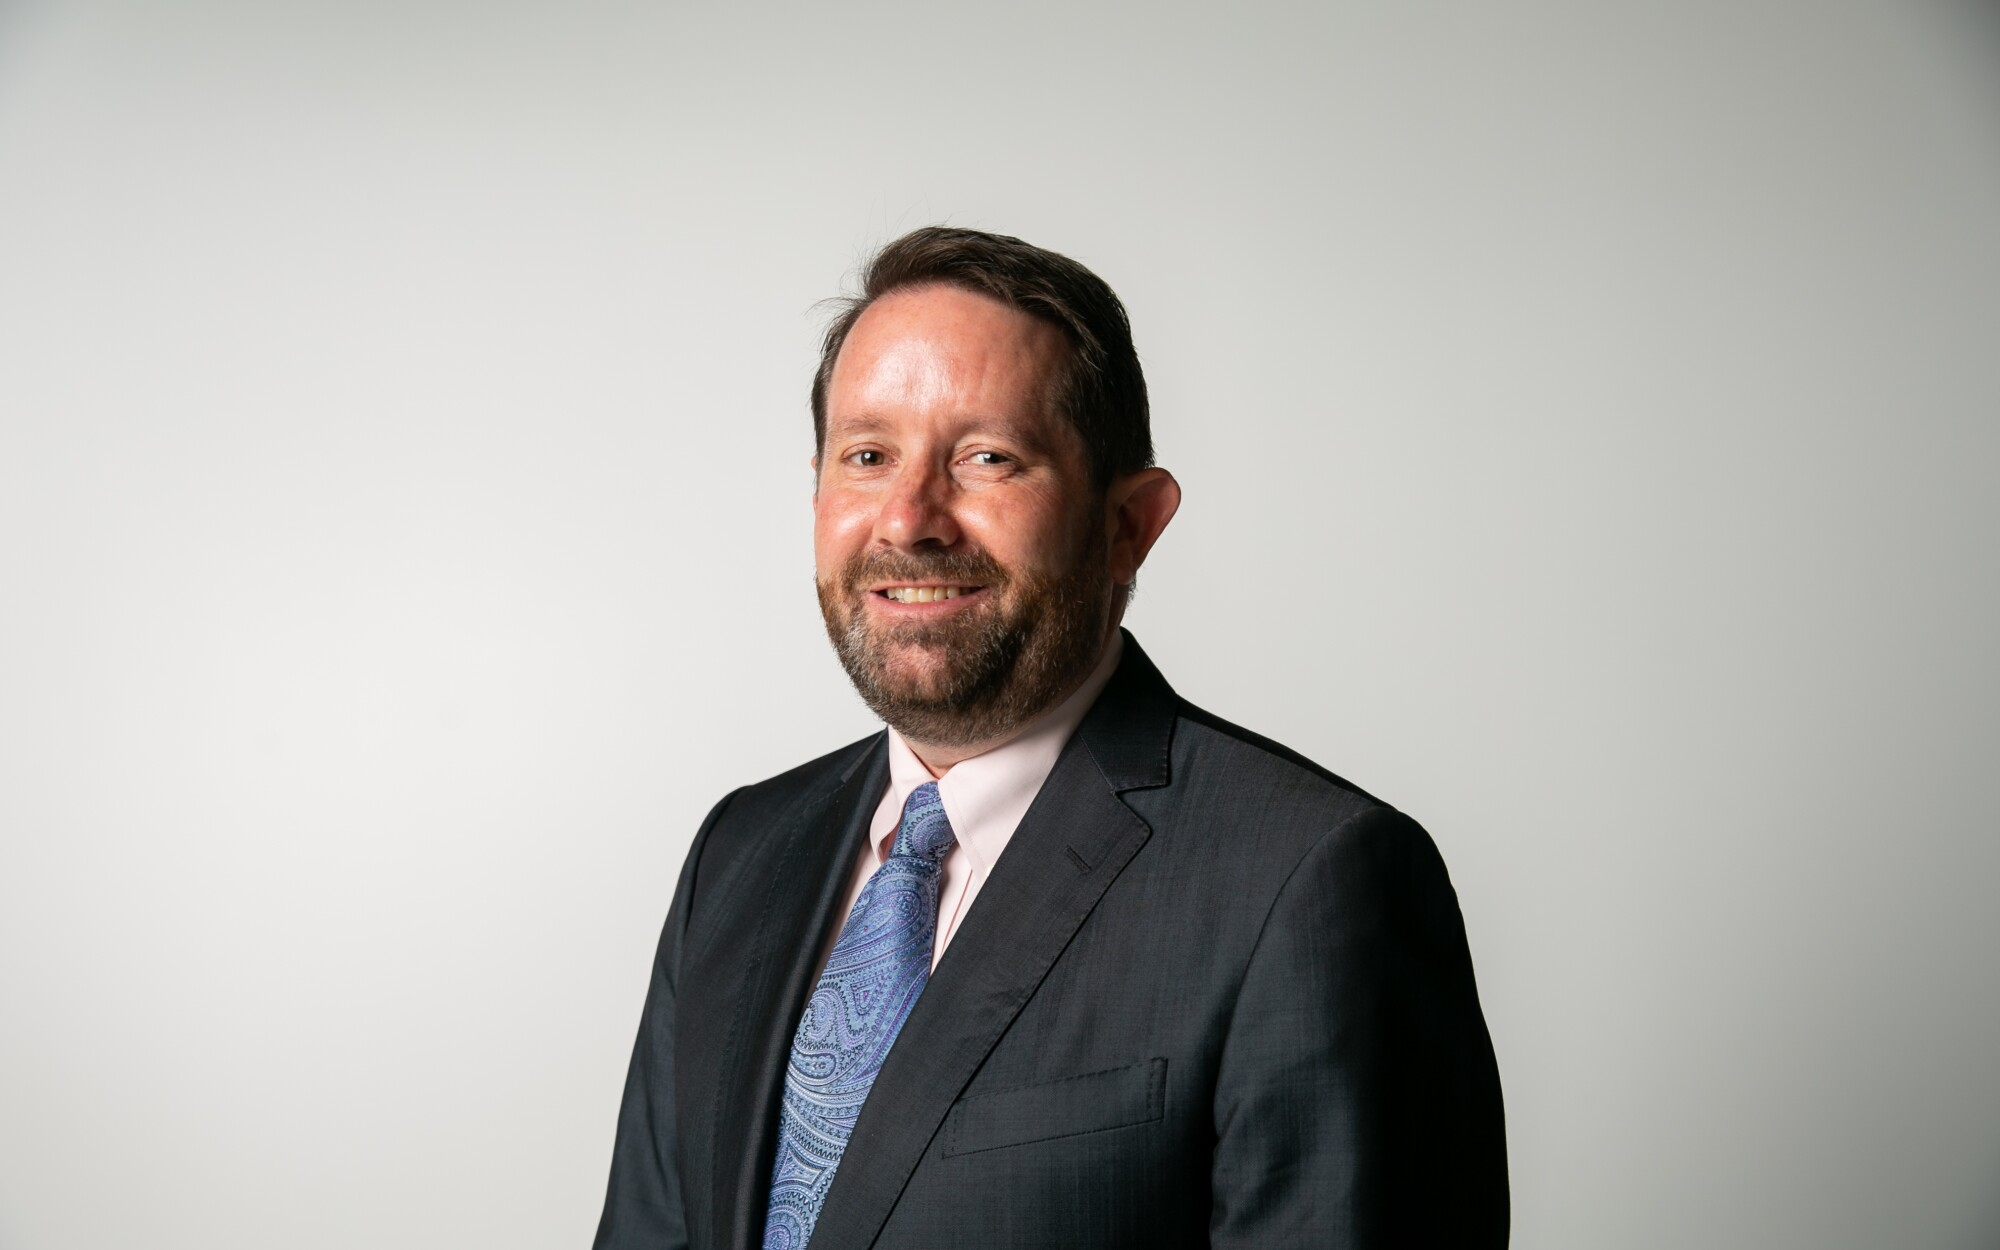 Will Moore, a candidate for San Diego City Council in District 1.